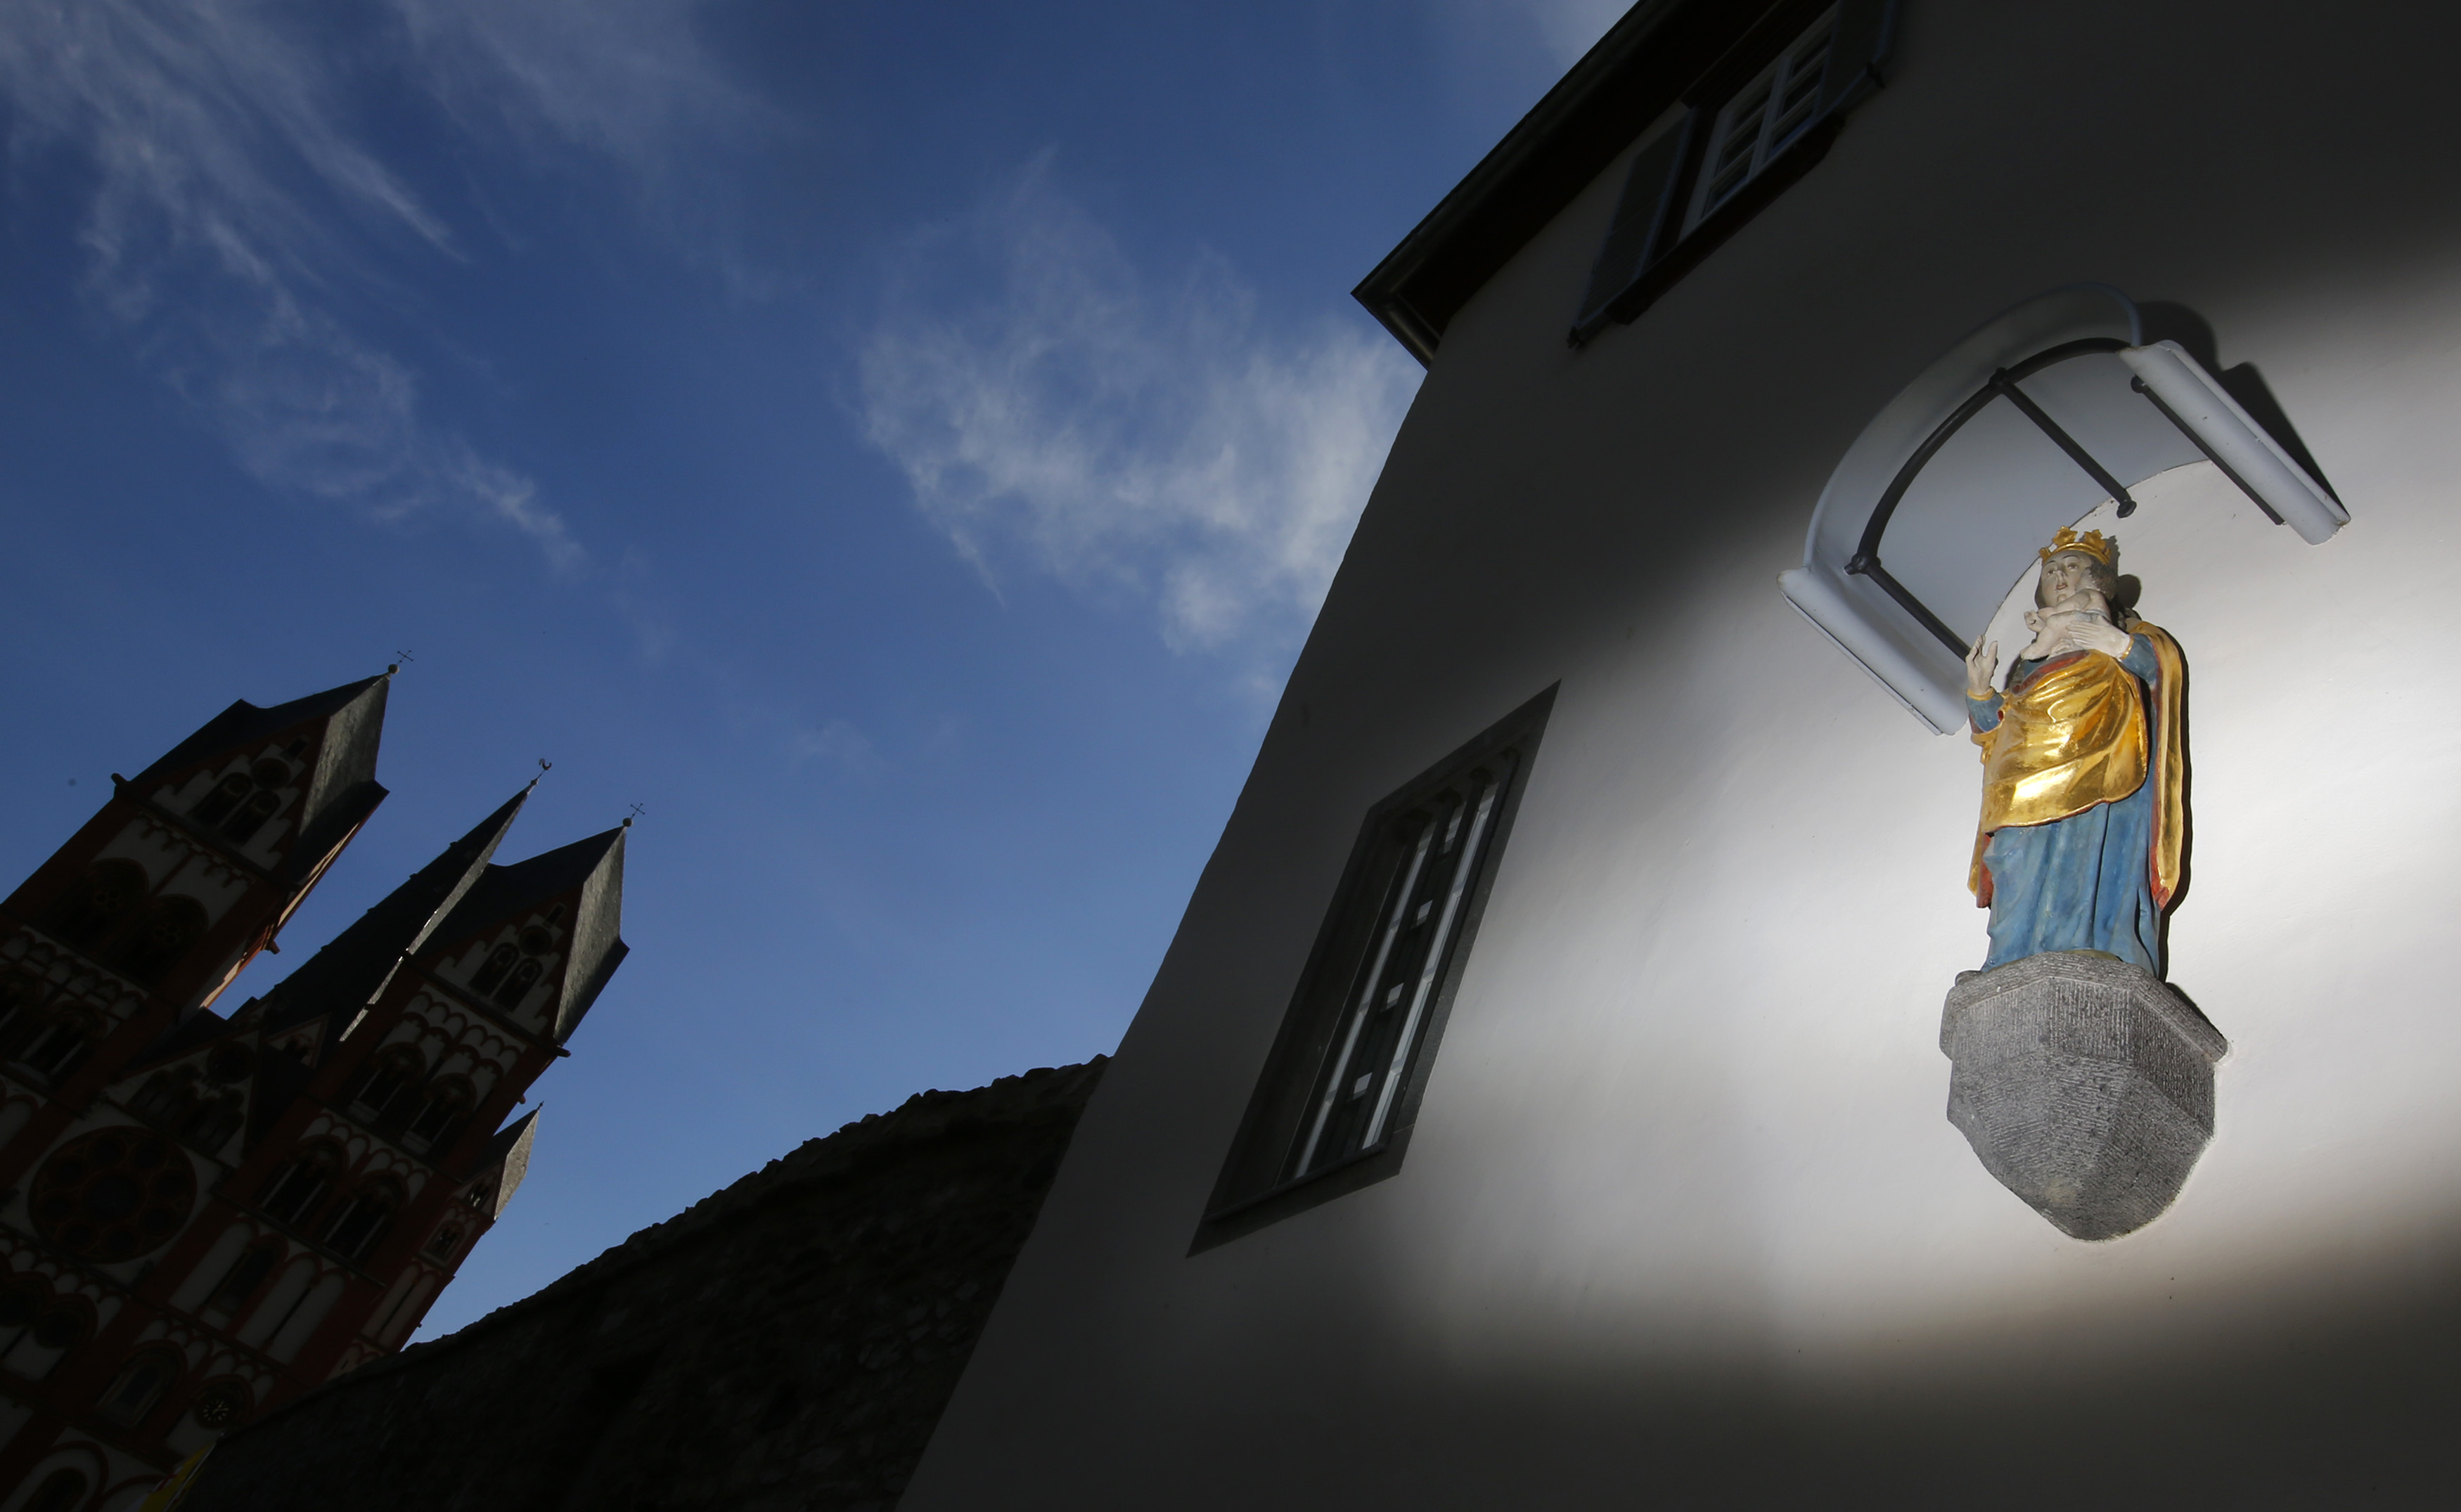 FILE PHOTO - A statue of the Virgin Mary adorns the facade of the bishop's residence next to Limburg Cathedral October 14, 2013. REUTERS/Kai Pfaffenbach